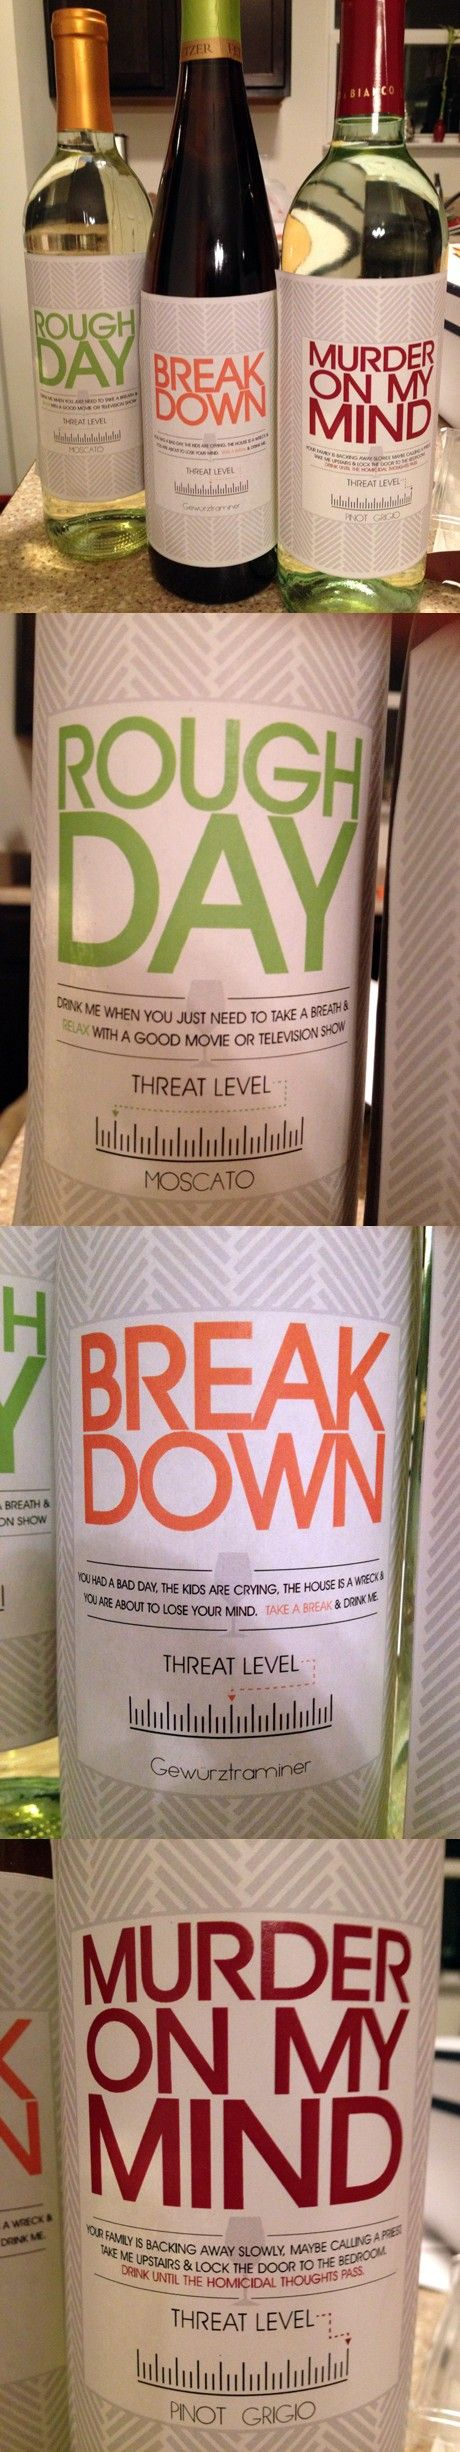 Homemade labels - pretty funny!